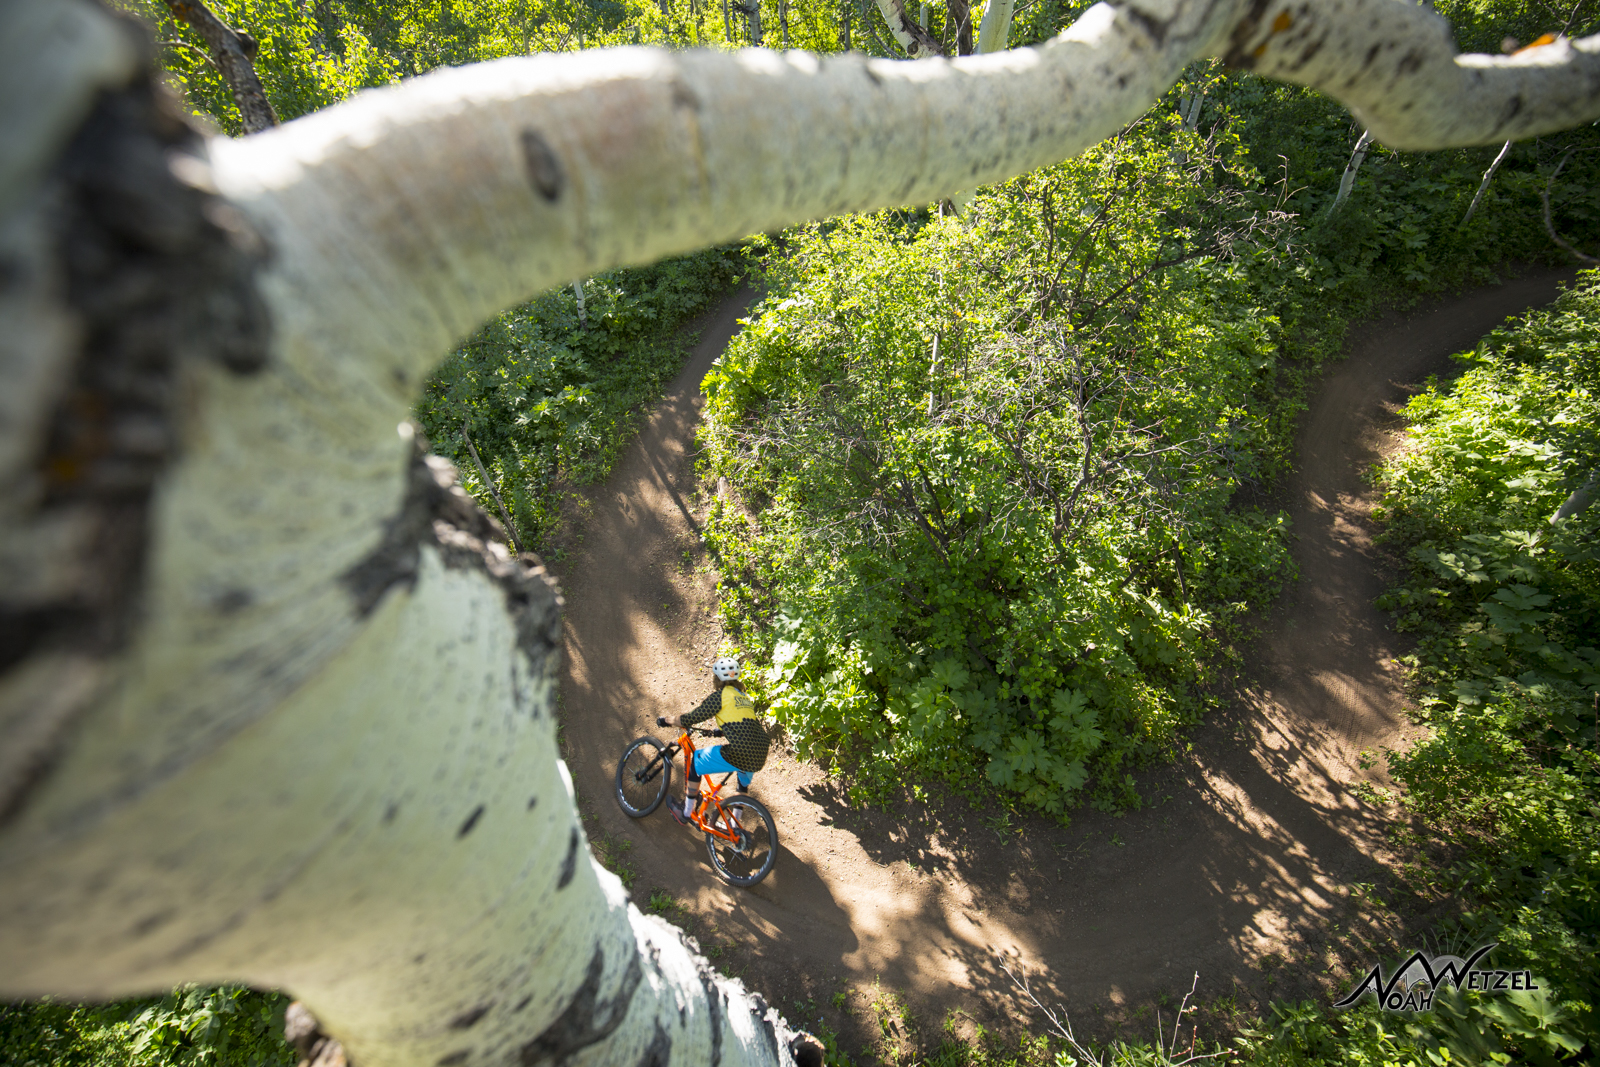 Mike Rundle ripping through a berm on NPR on Emerald Mountain. Steamboat Springs, Colorado